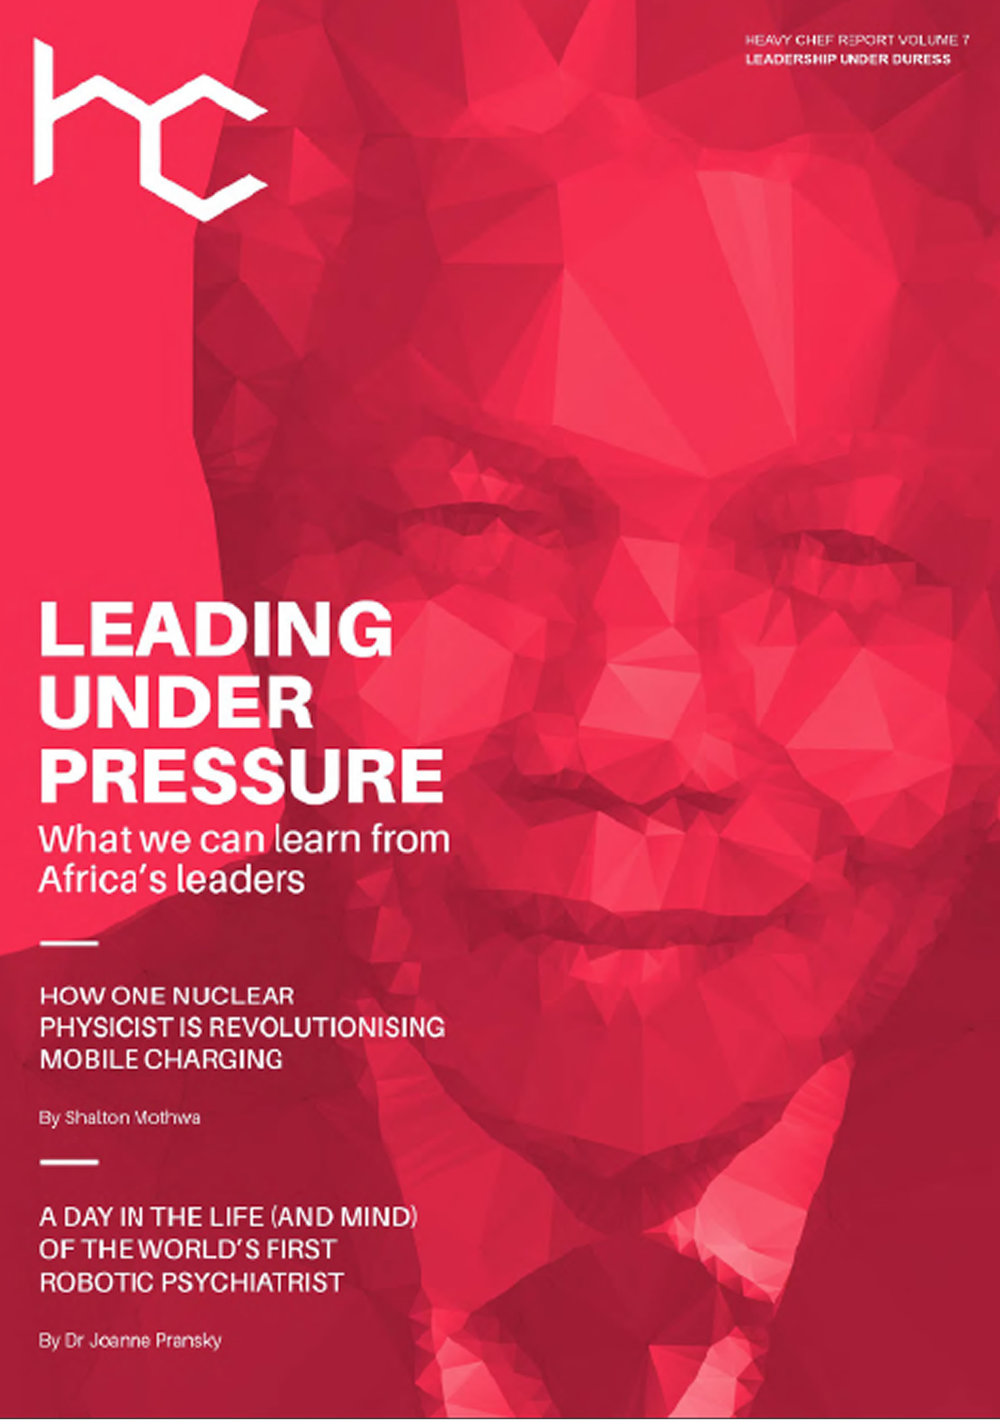 Who better but the greatest leader Africa's ever produced to grace the cover of the Leadership Edition? Nelson Rolihlahla Mandela, RIP.